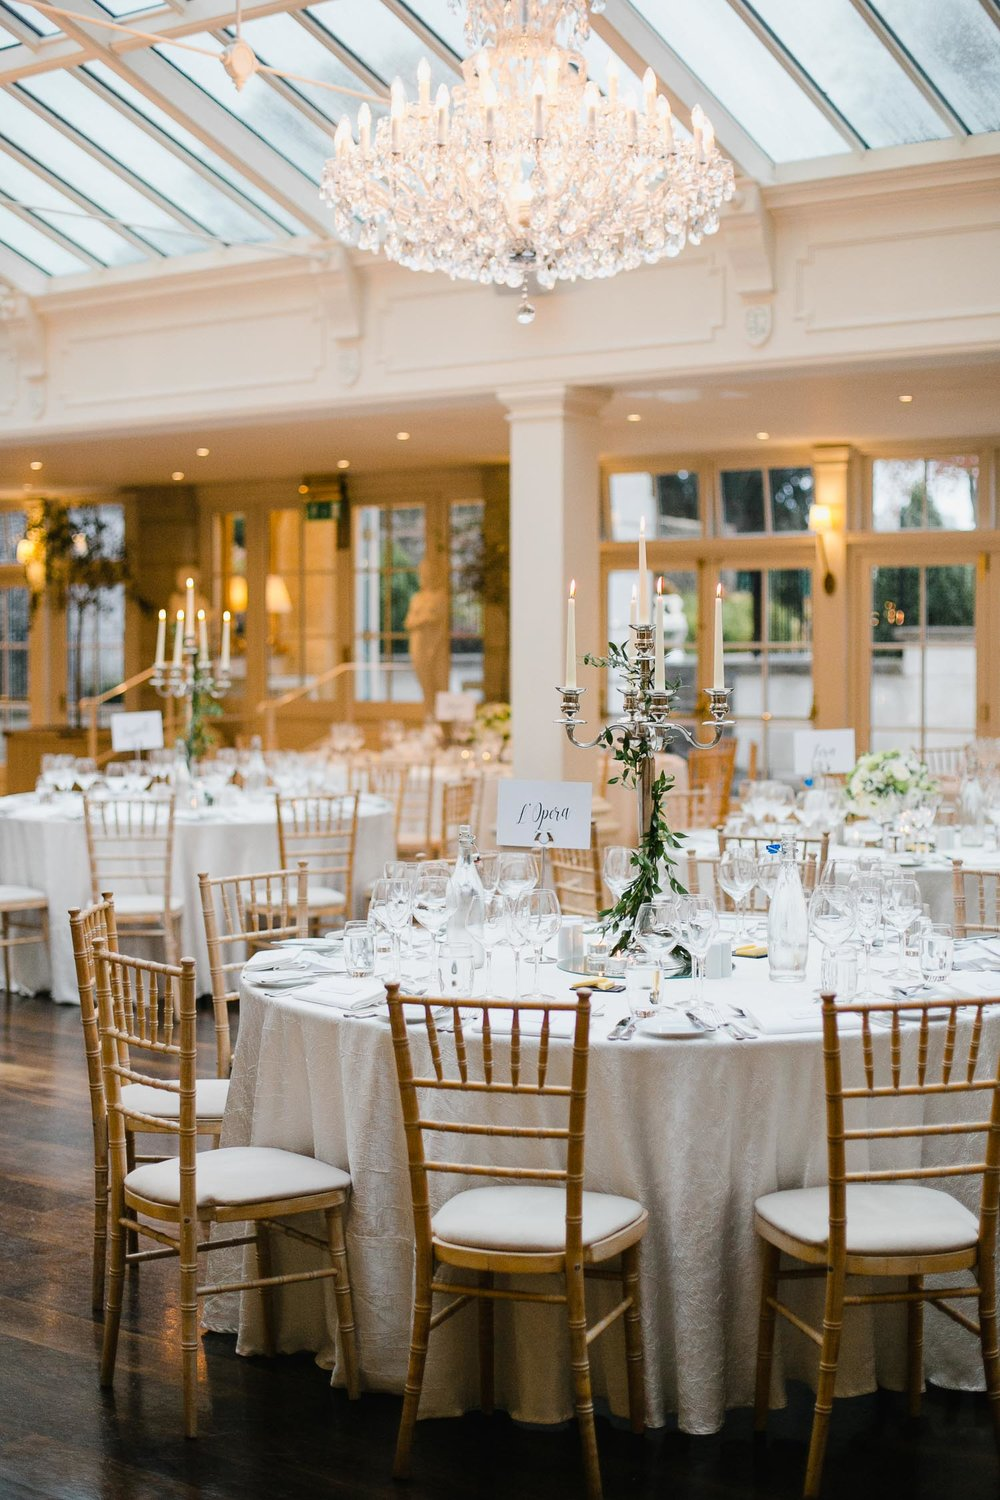 Tankardstown House Wedding Day Reception Table Setup